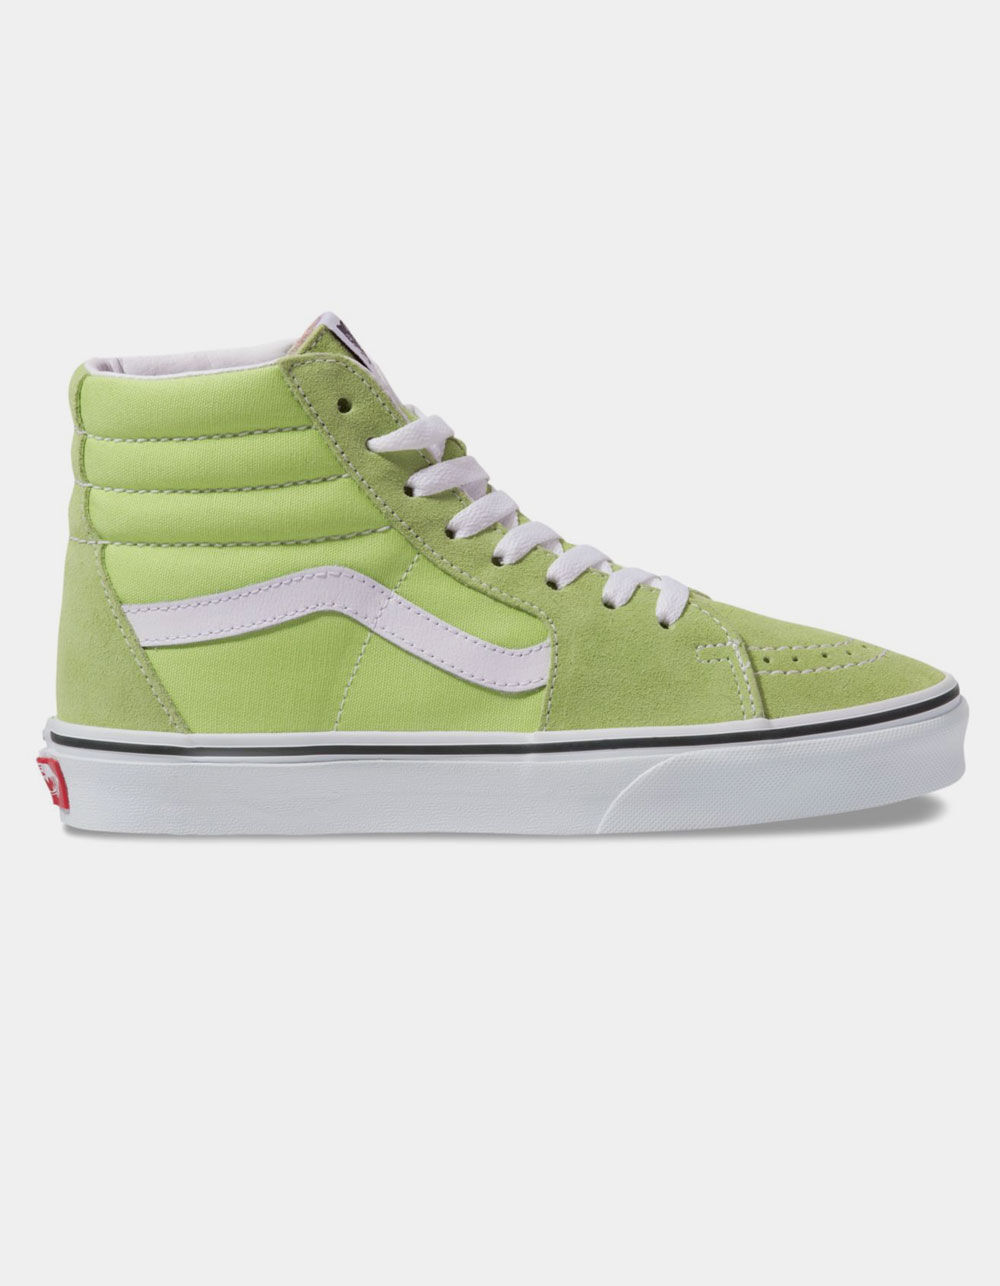 VANS Sk8-Hi Sharp Green & True White Shoes